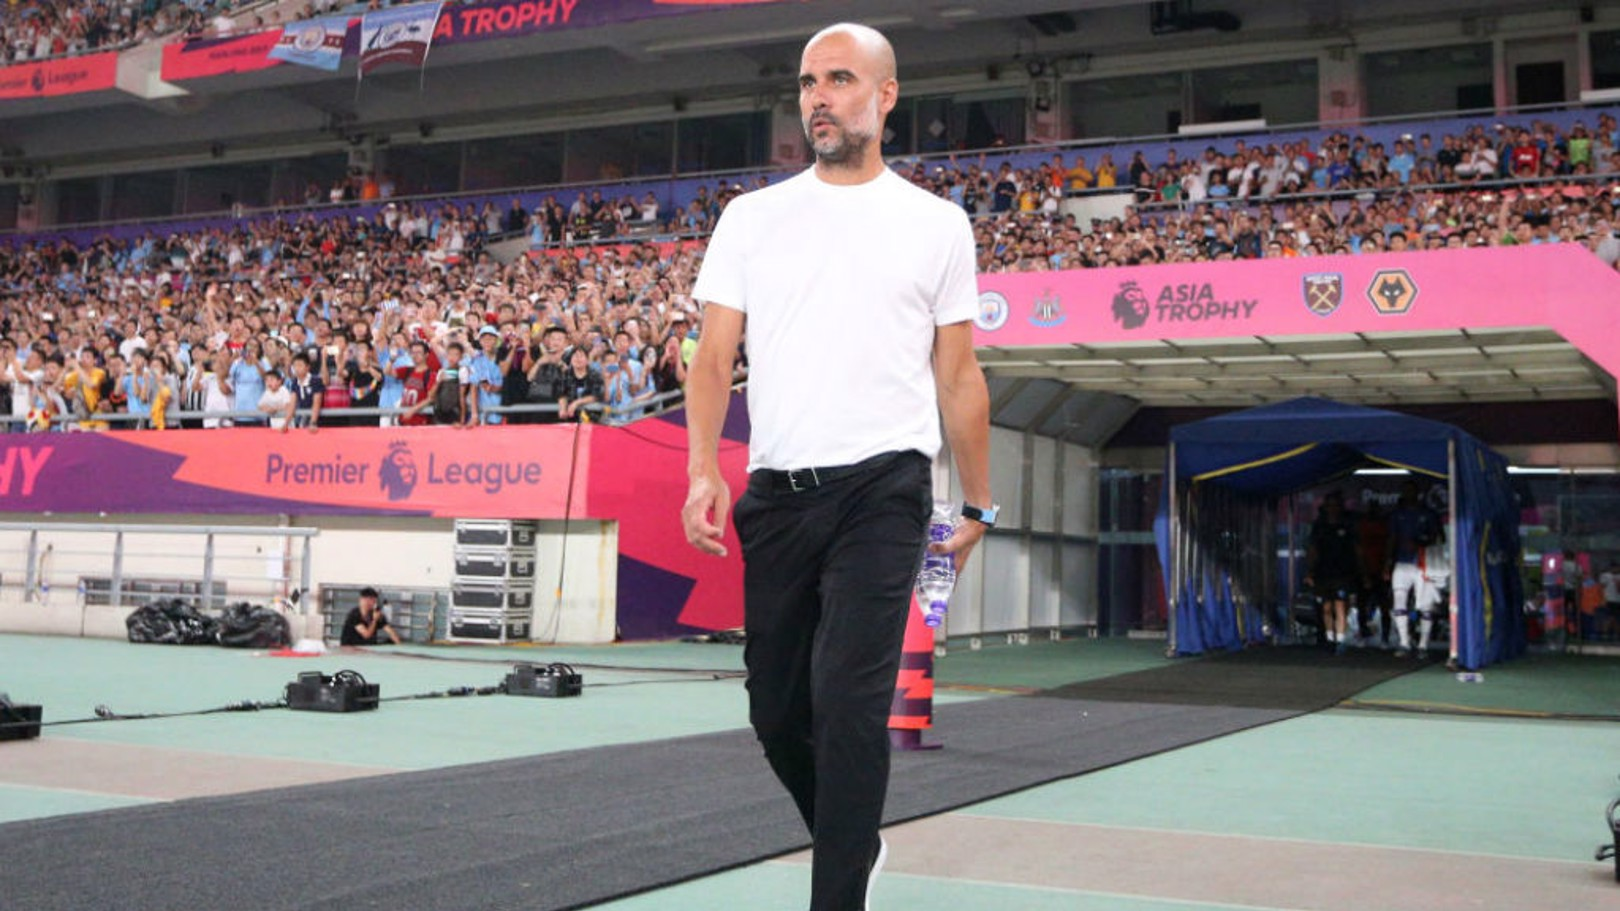 THE BOSS: Pep Guardiola watches on at the Nanjing Stadium